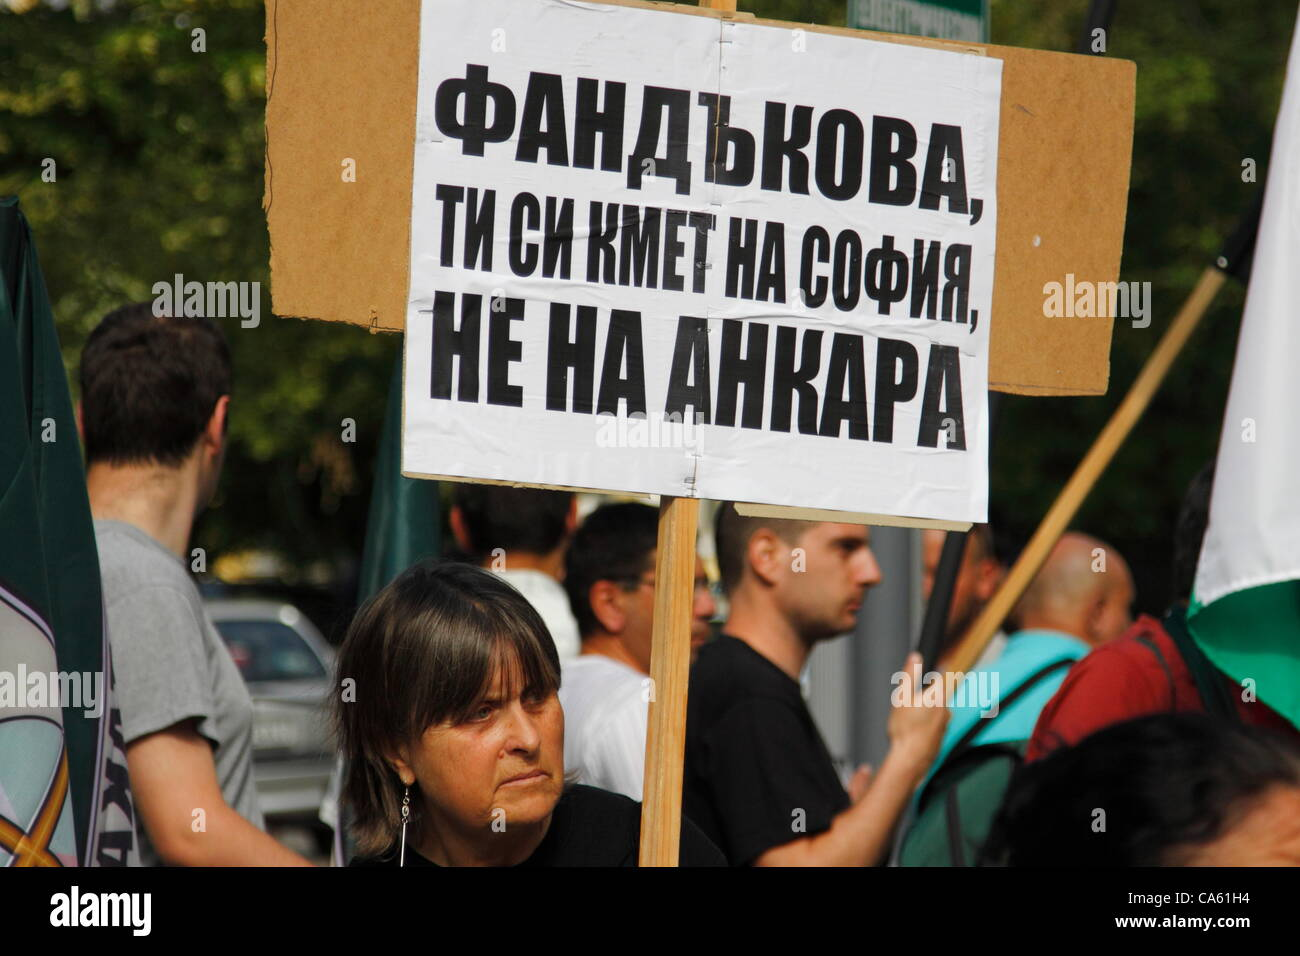 Demonstrator showing a sign 'Fandakova, you are the mayor of Sofia not Ankara' during the anti-islamic rally - Stock Image